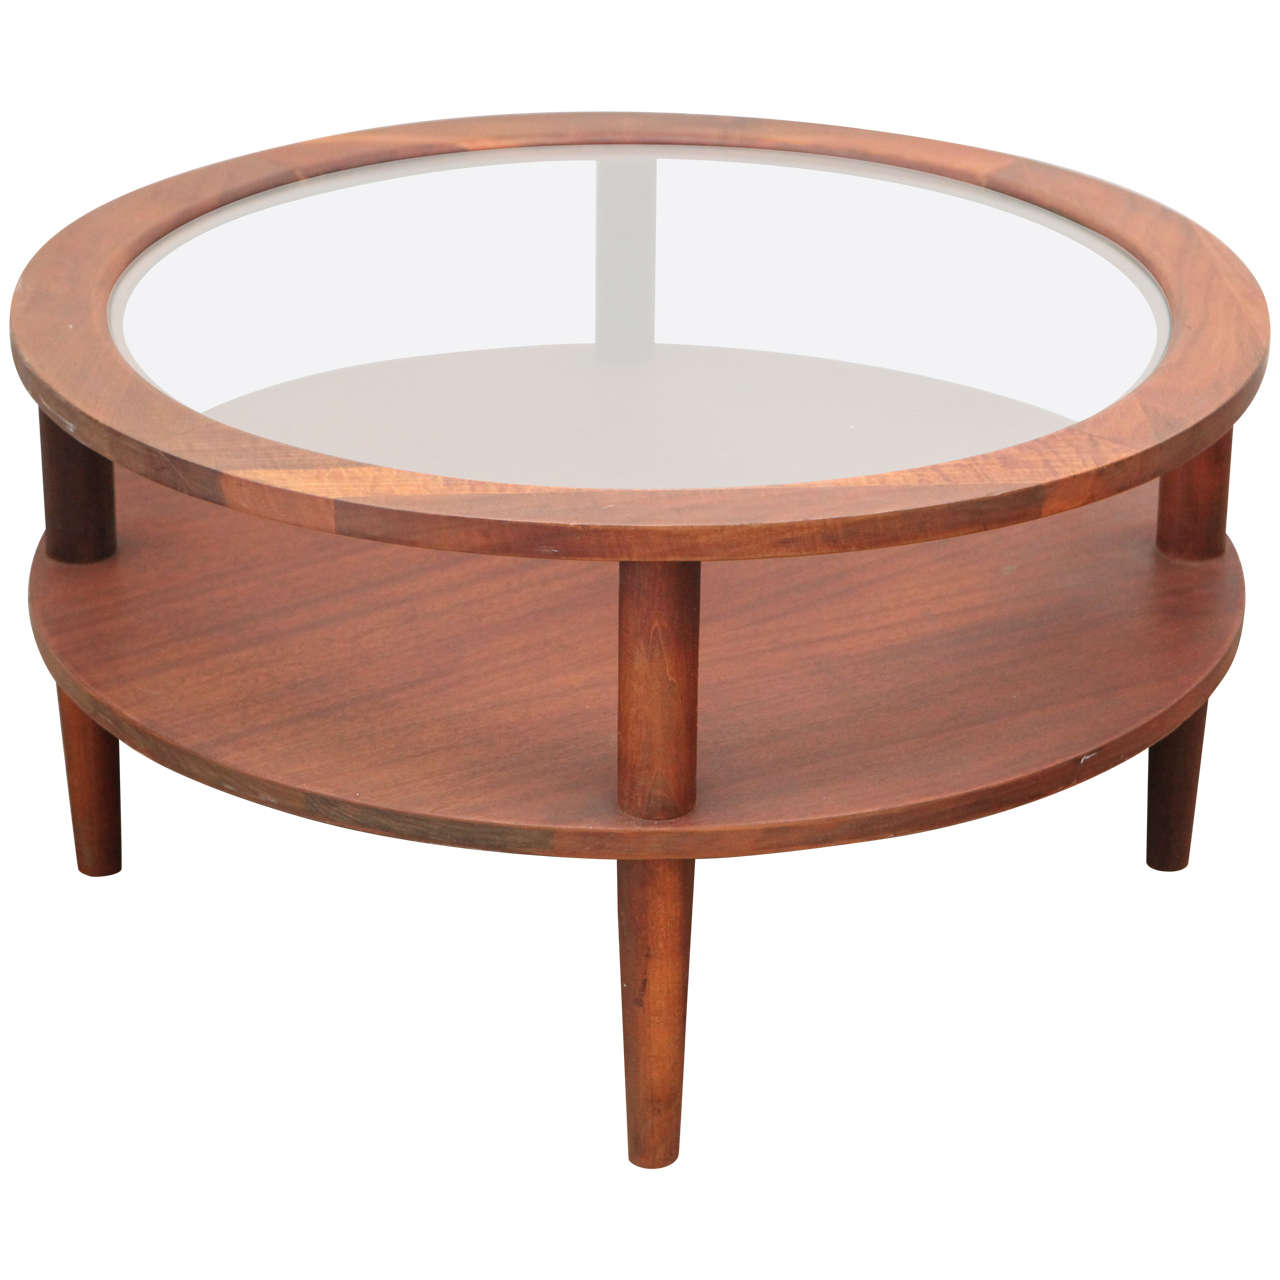 Vintage round glass topped coffee table at 1stdibs Round coffee tables